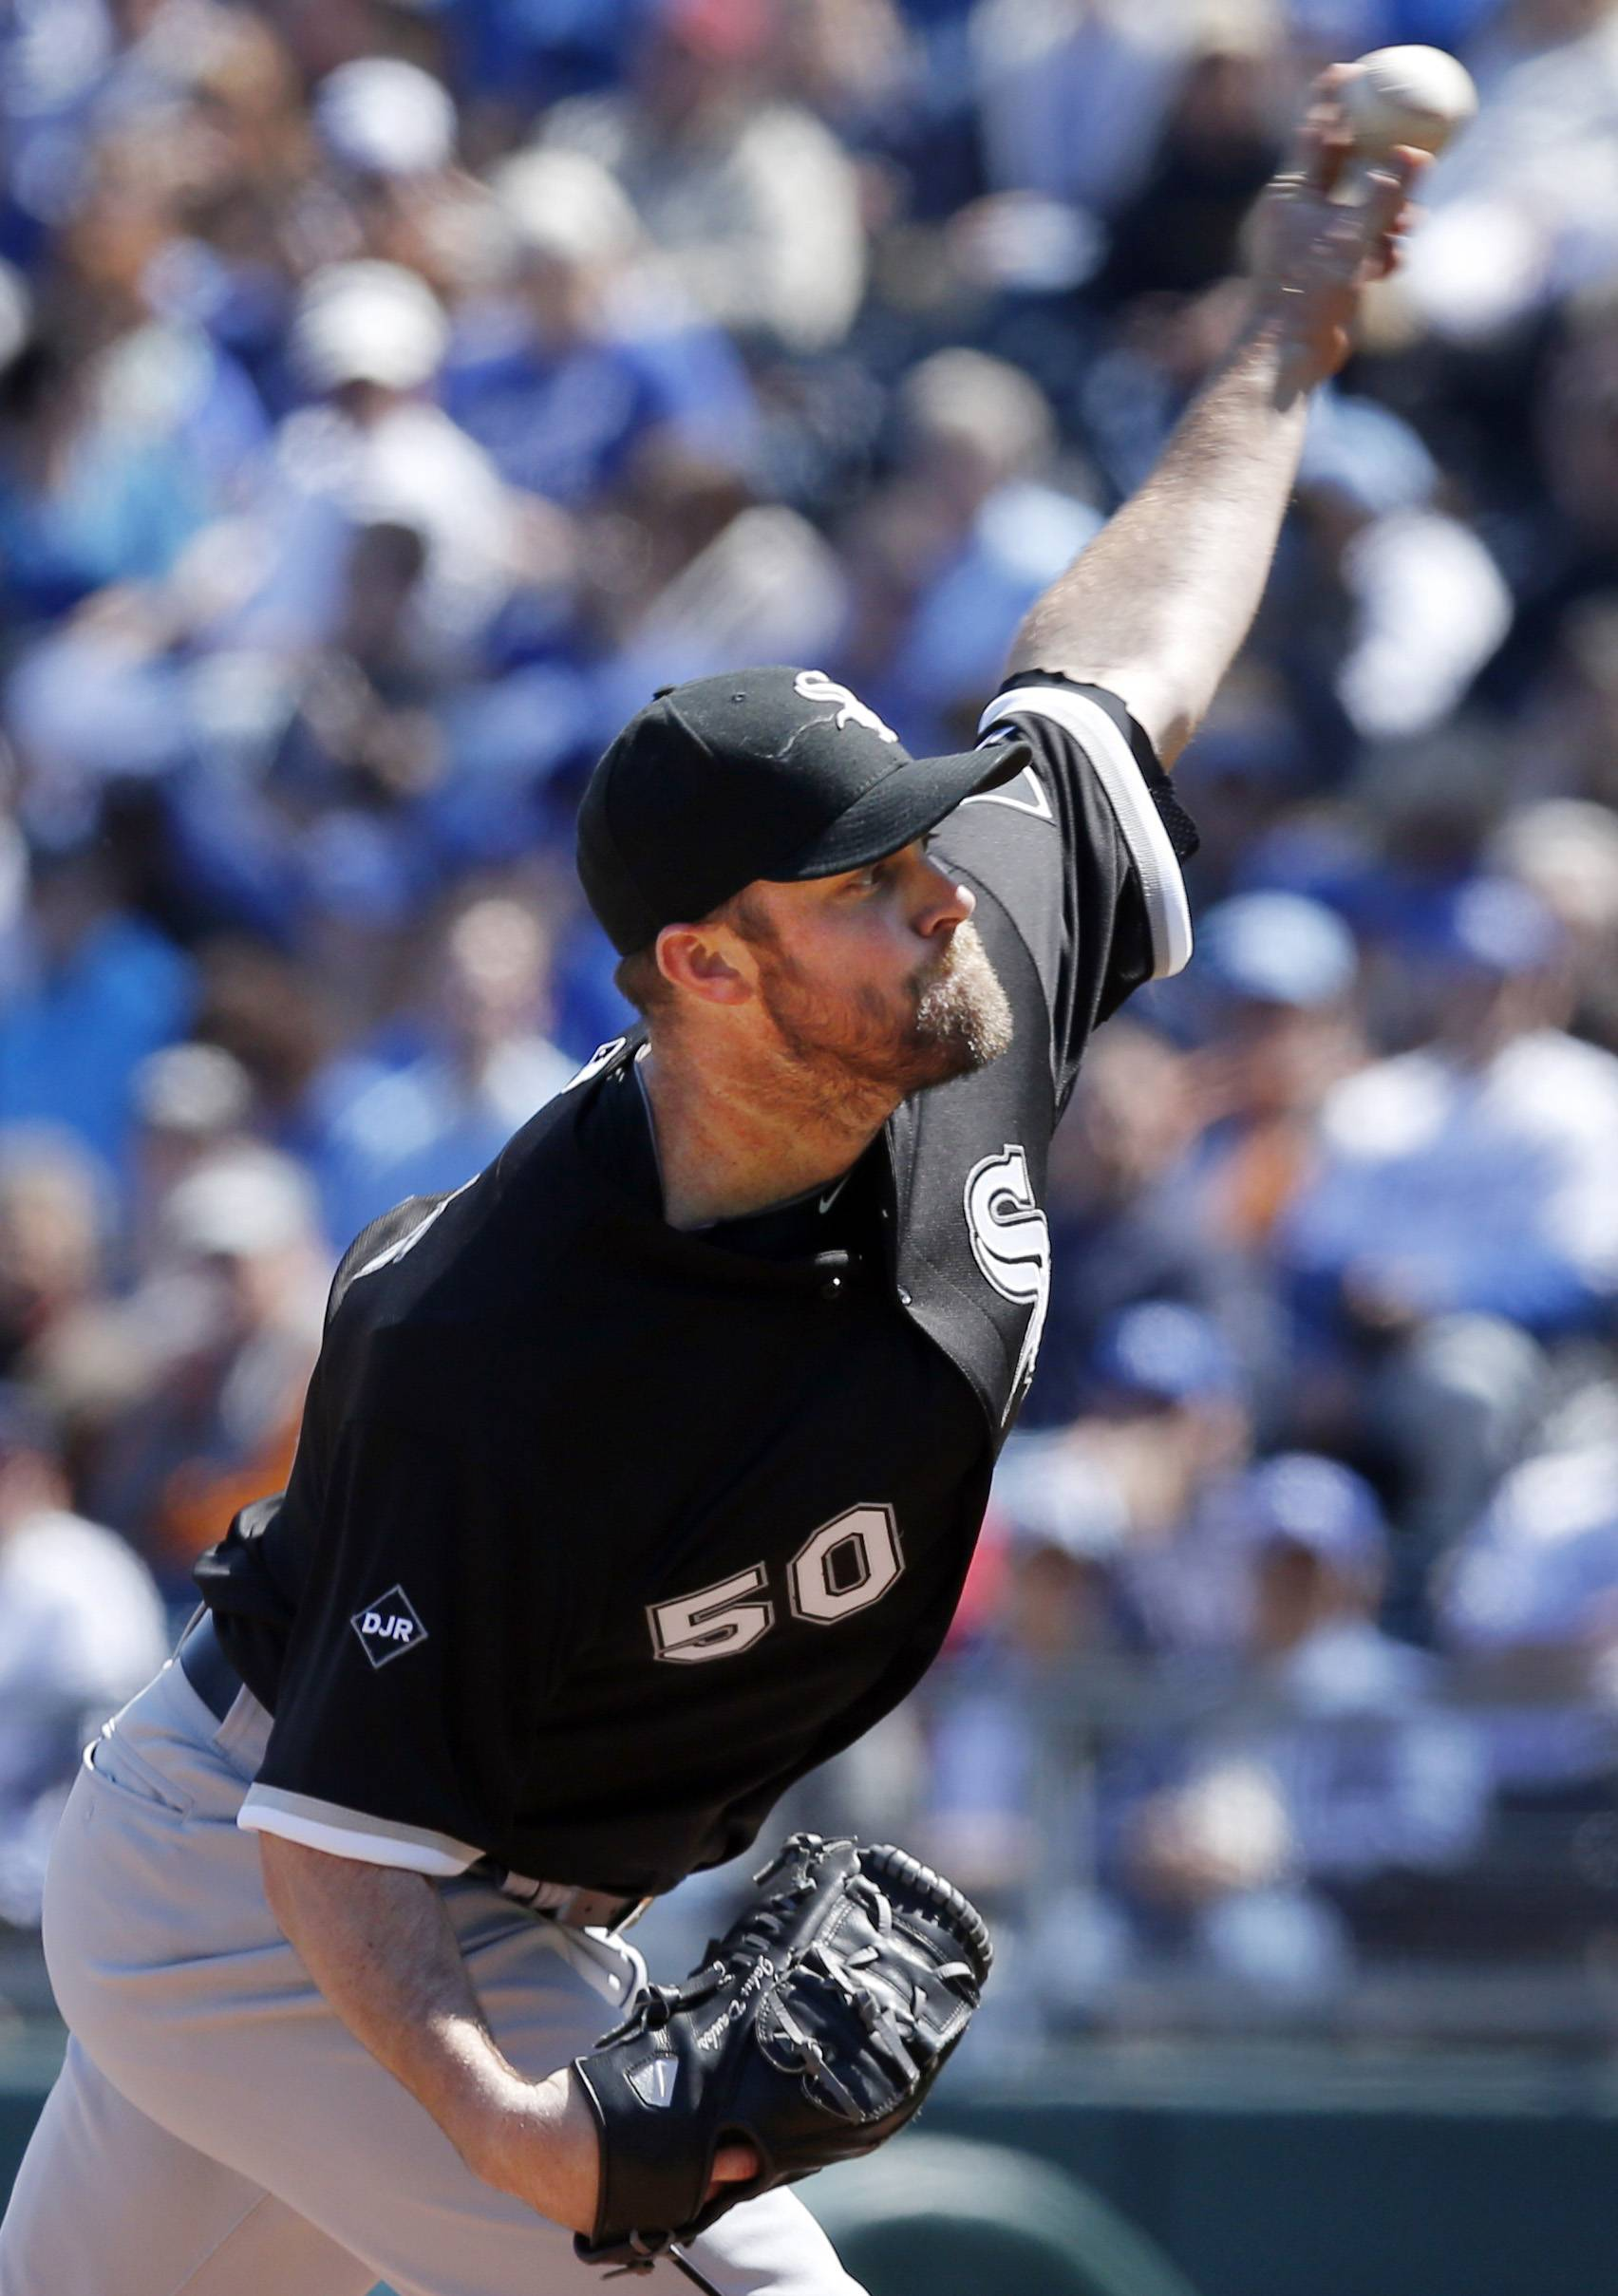 Chicago White Sox starting pitcher John Danks delivers to Kansas City Royals' Norichika Aoki during the first inning of a baseball game at Kauffman Stadium in Kansas City, Mo., Saturday, April 5, 2014. (AP Photo/Orlin Wagner)